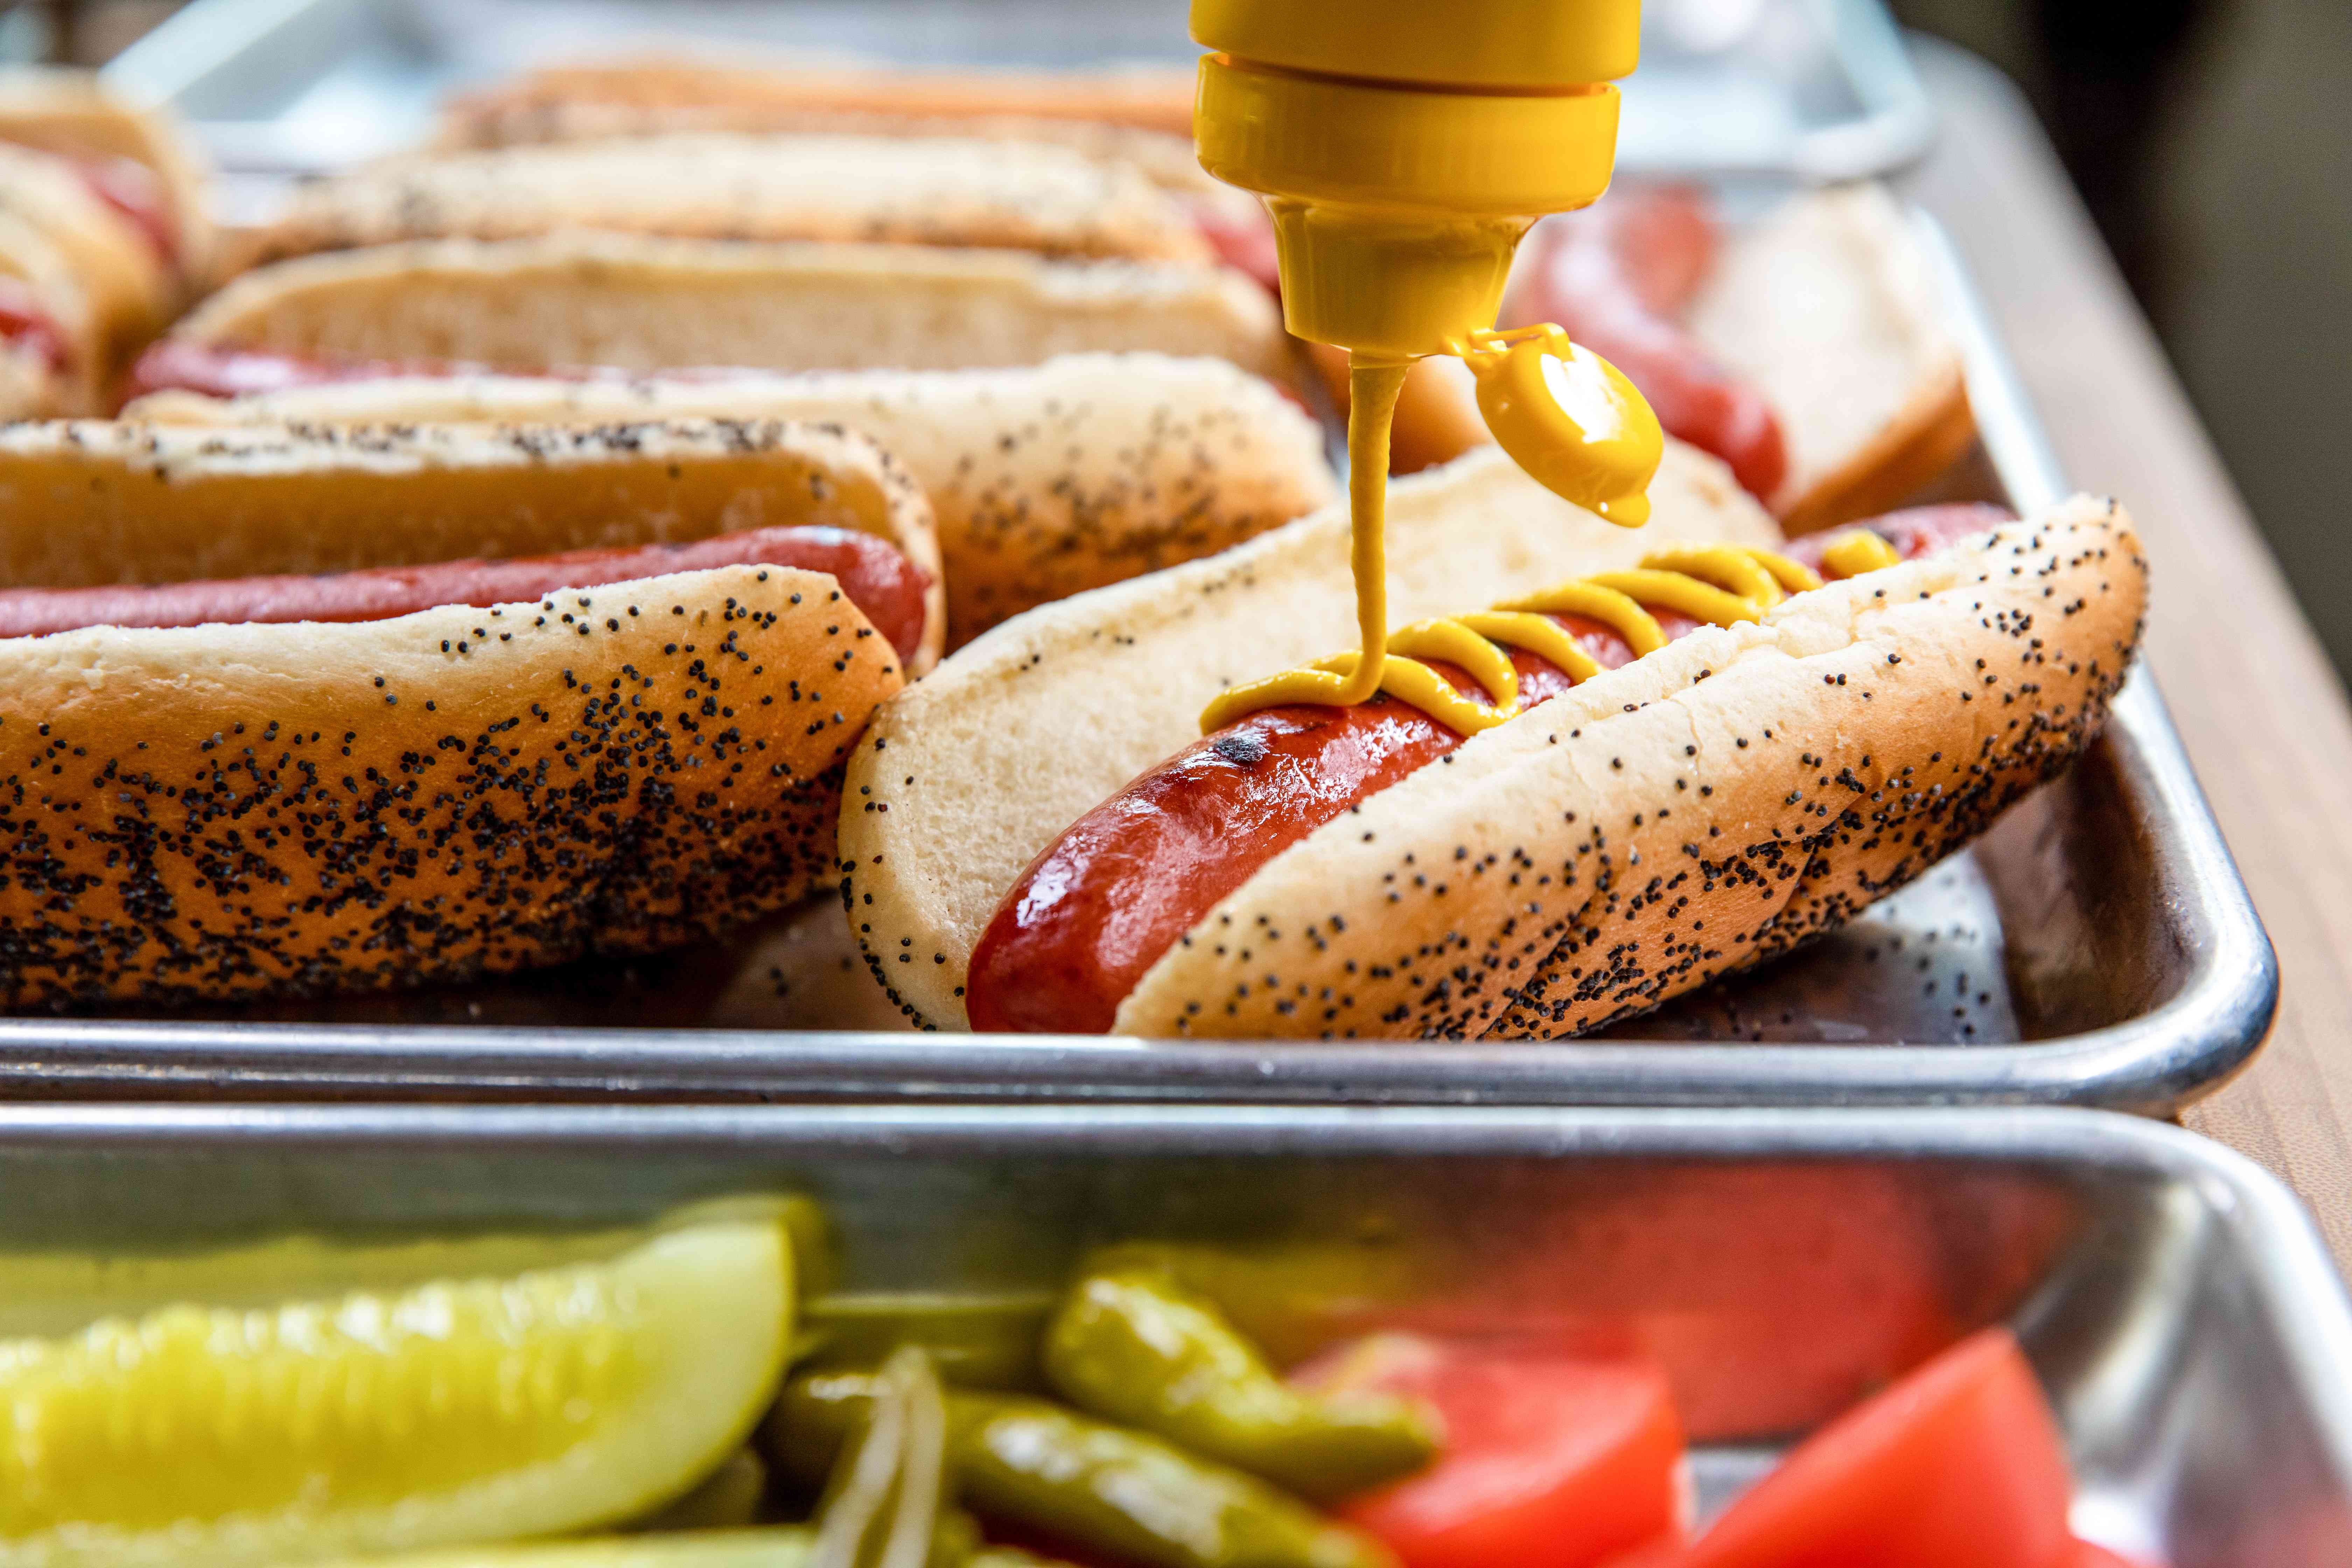 Topping a Chicago hot dog with mustard.